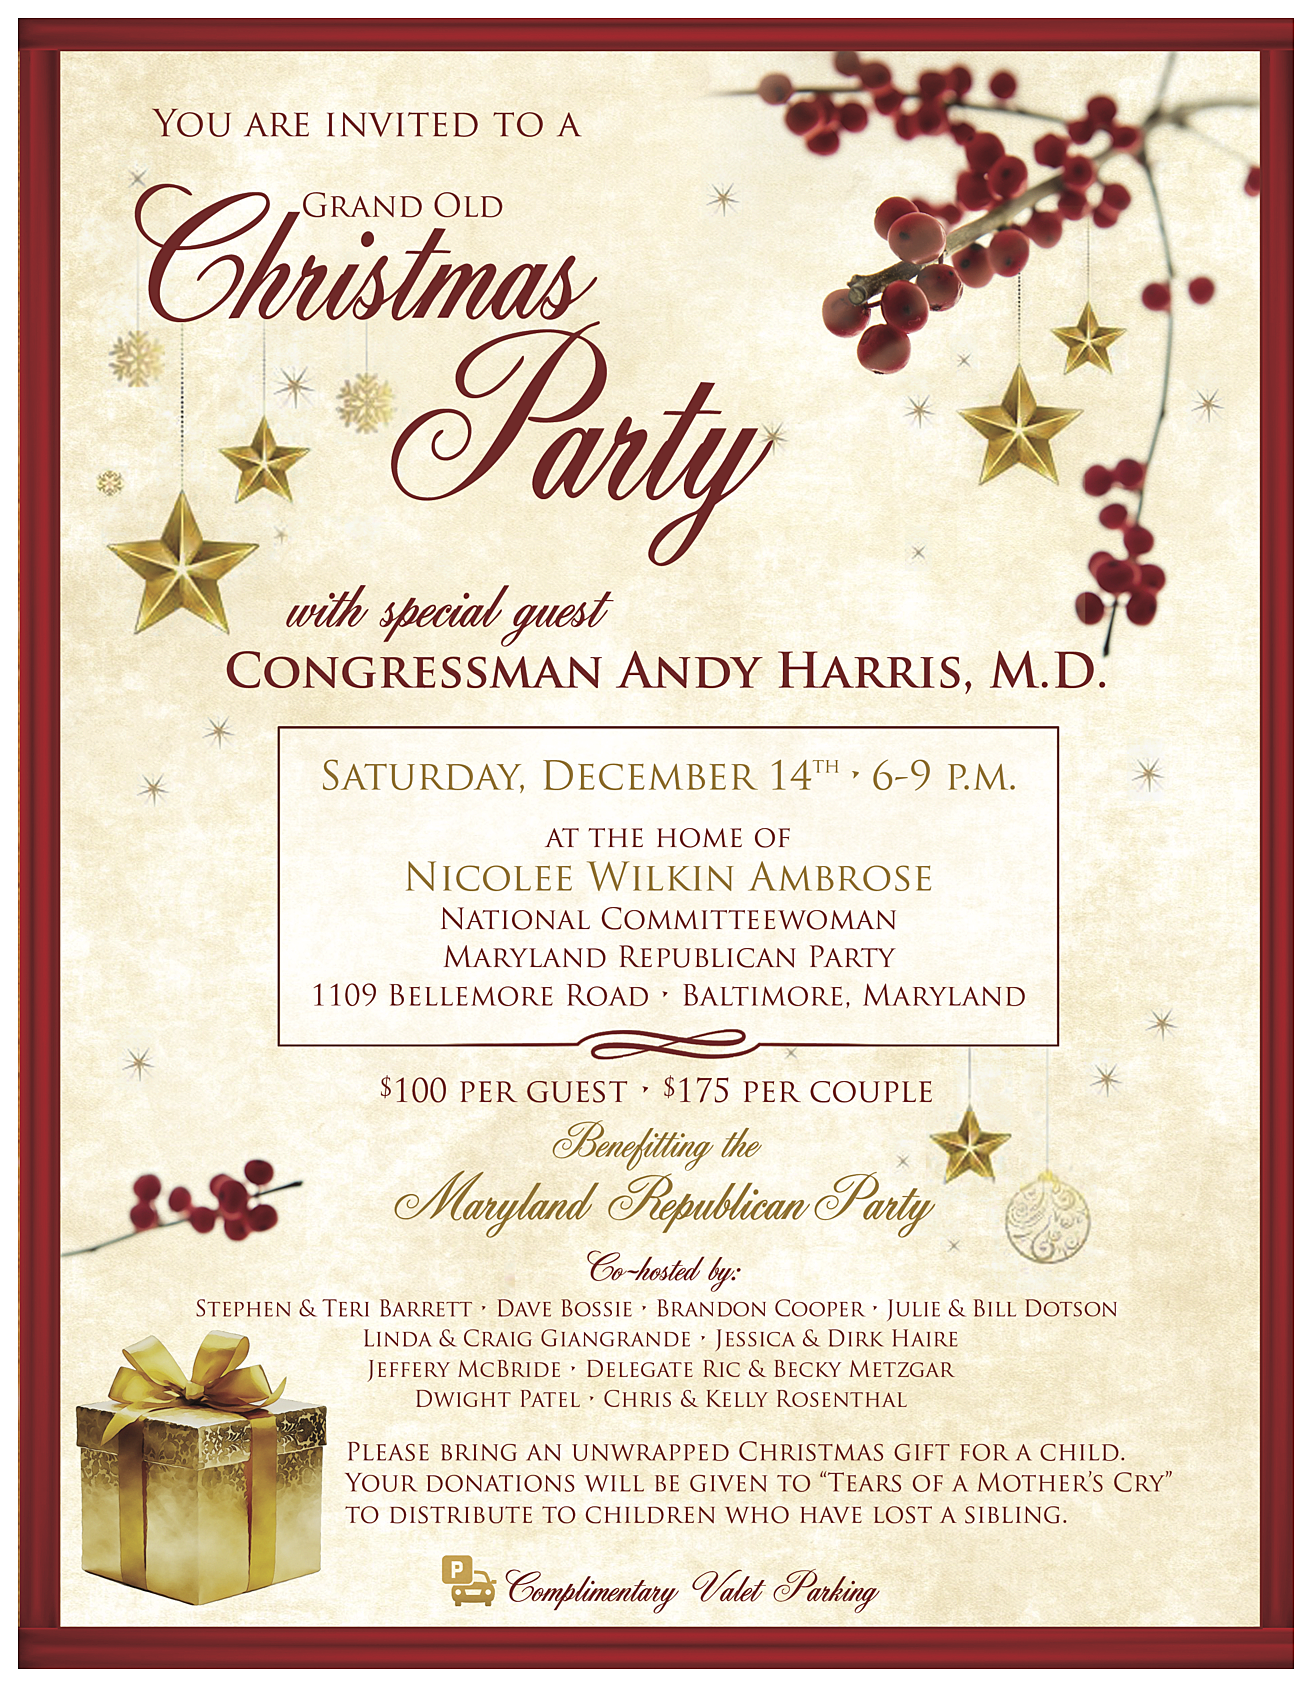 Maryland Republican Party: 2019 Grand Old Christmas Party